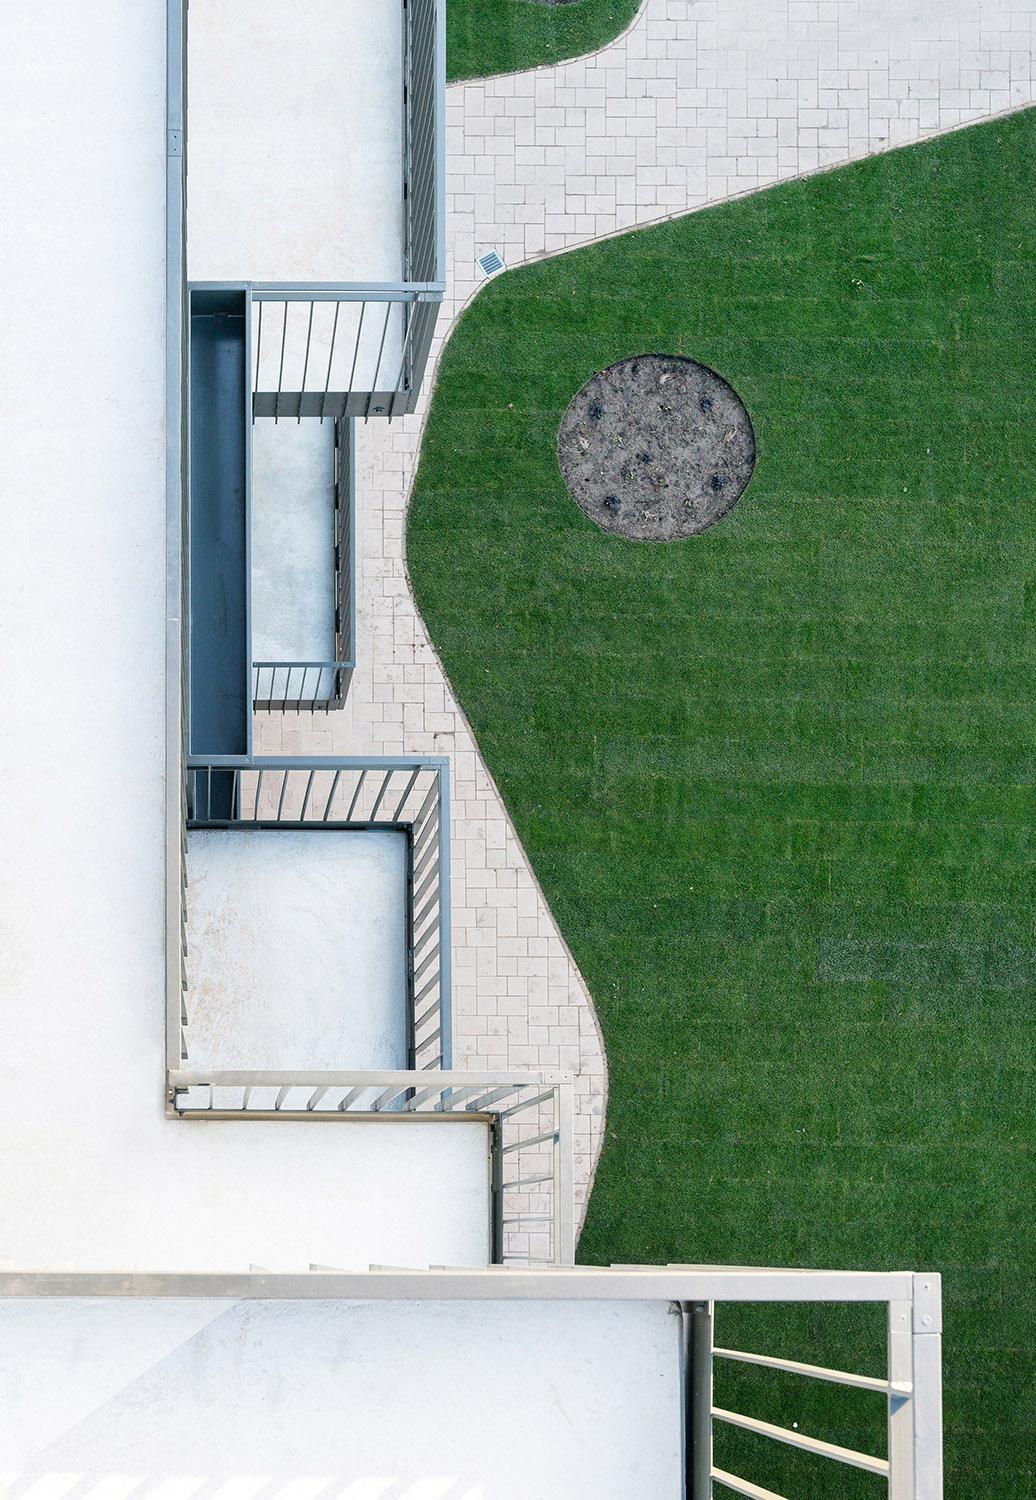 IDW Süd_view from above Lukas Schaller